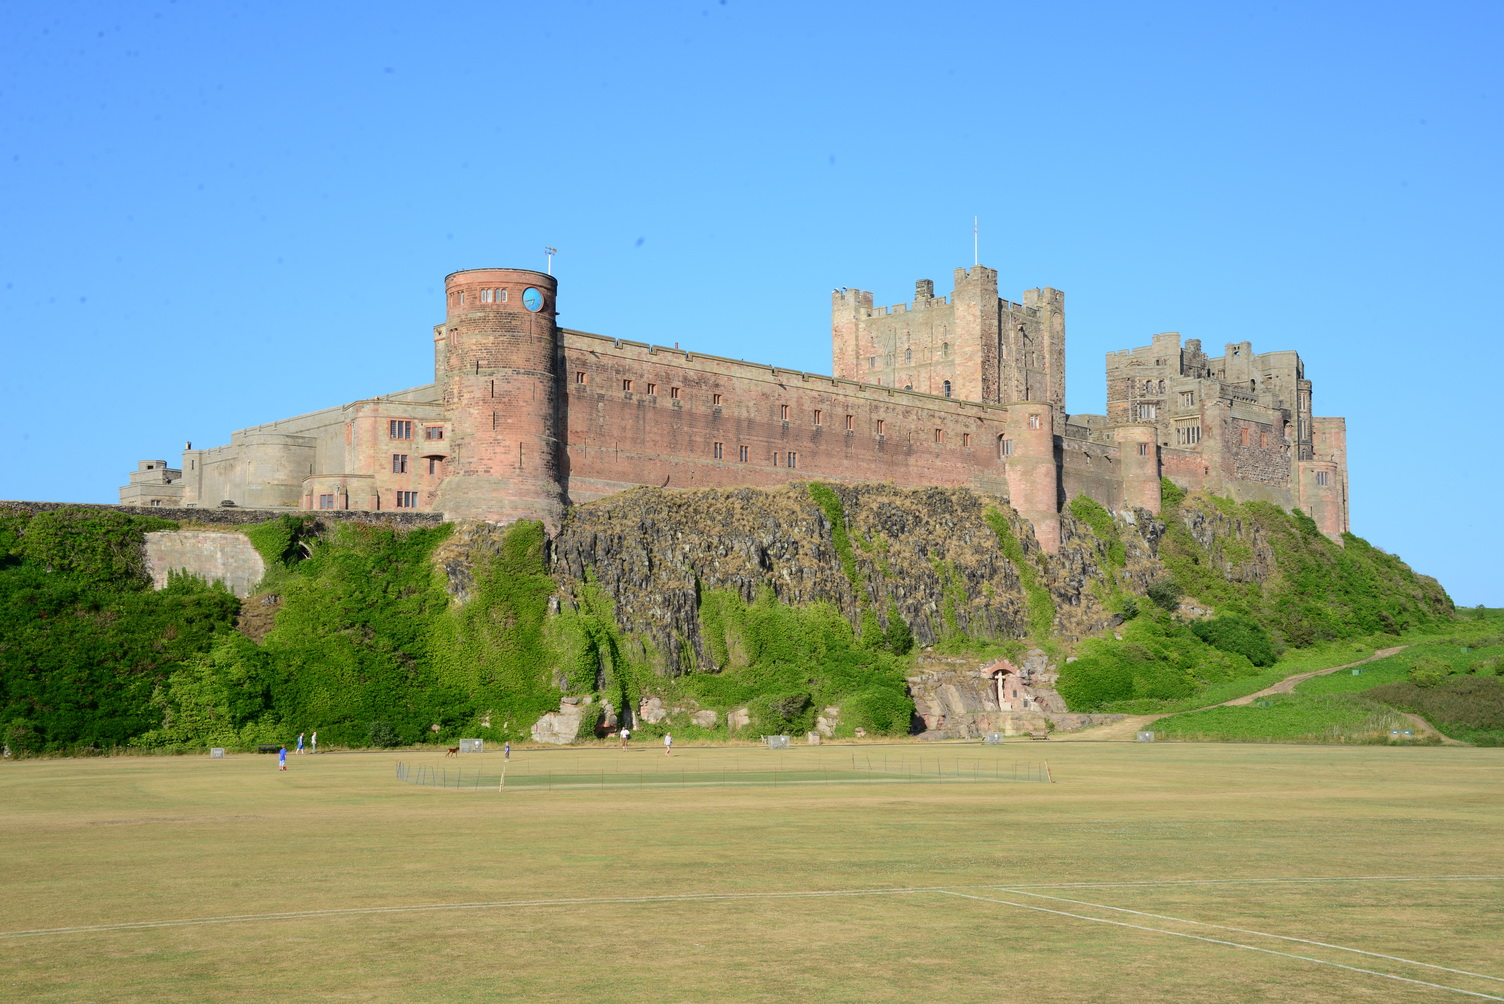 bamburgh castle - photo #23